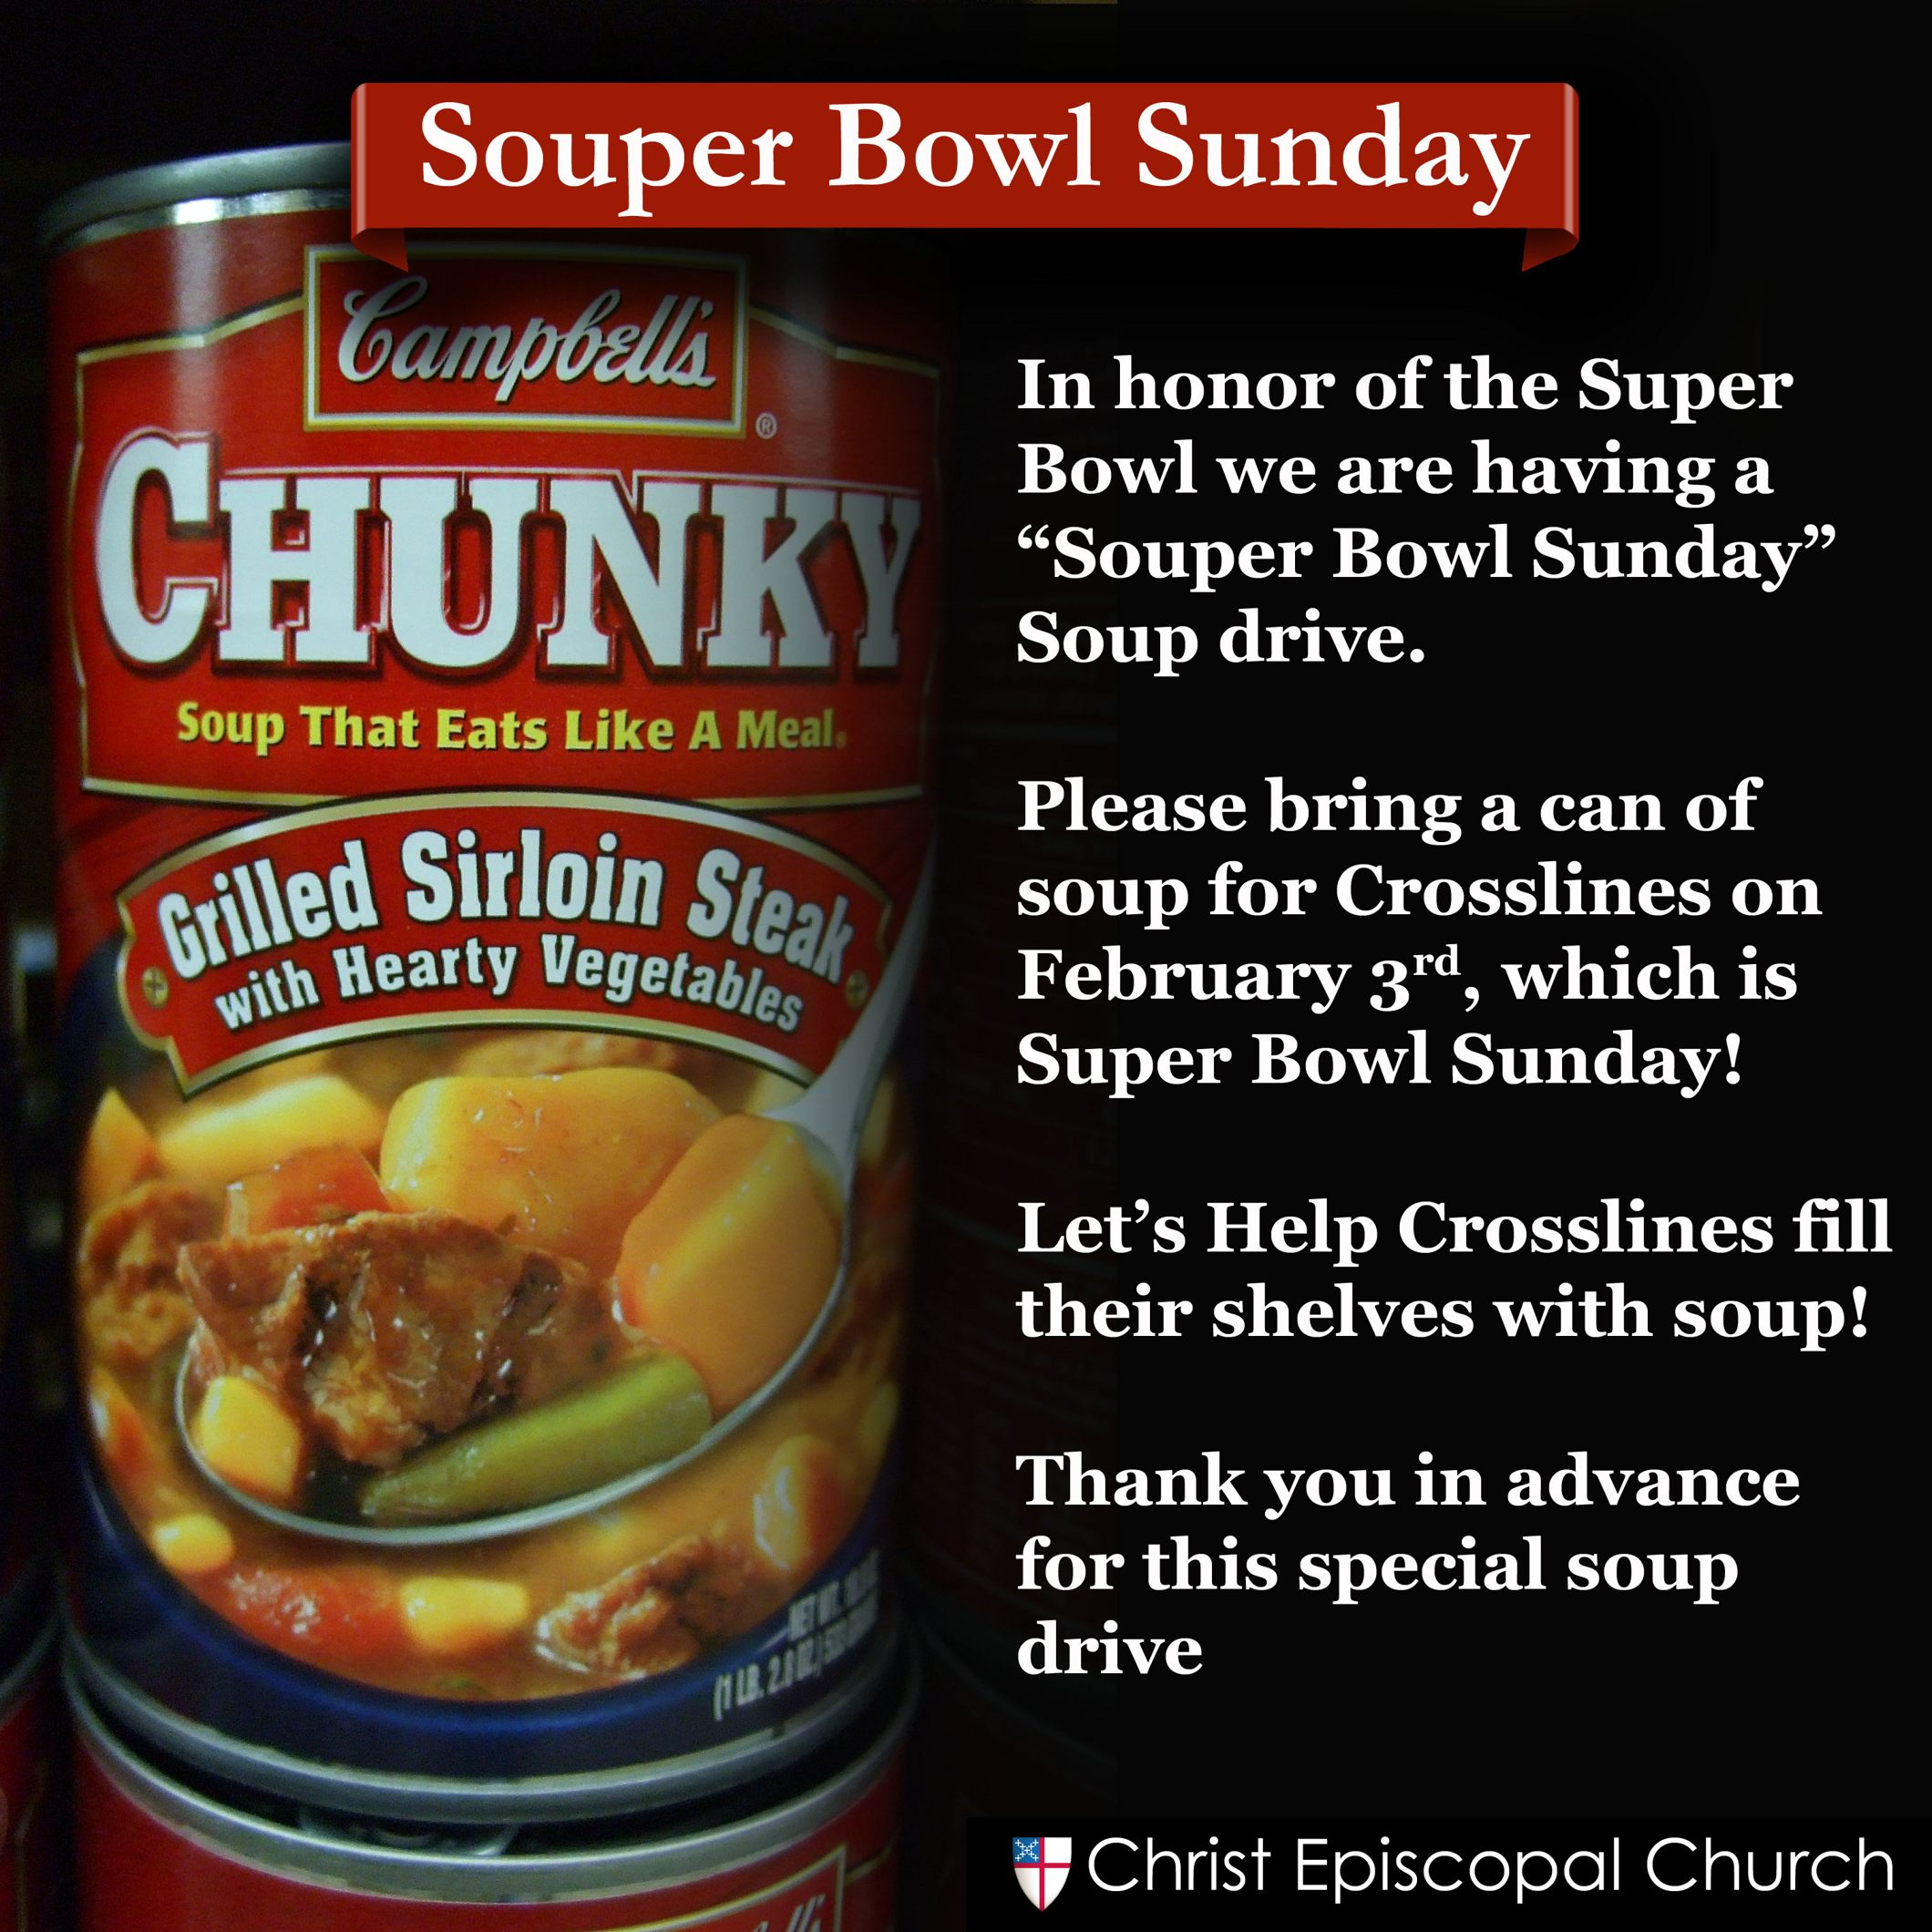 Souper Bowl Sunday - Facebook Post